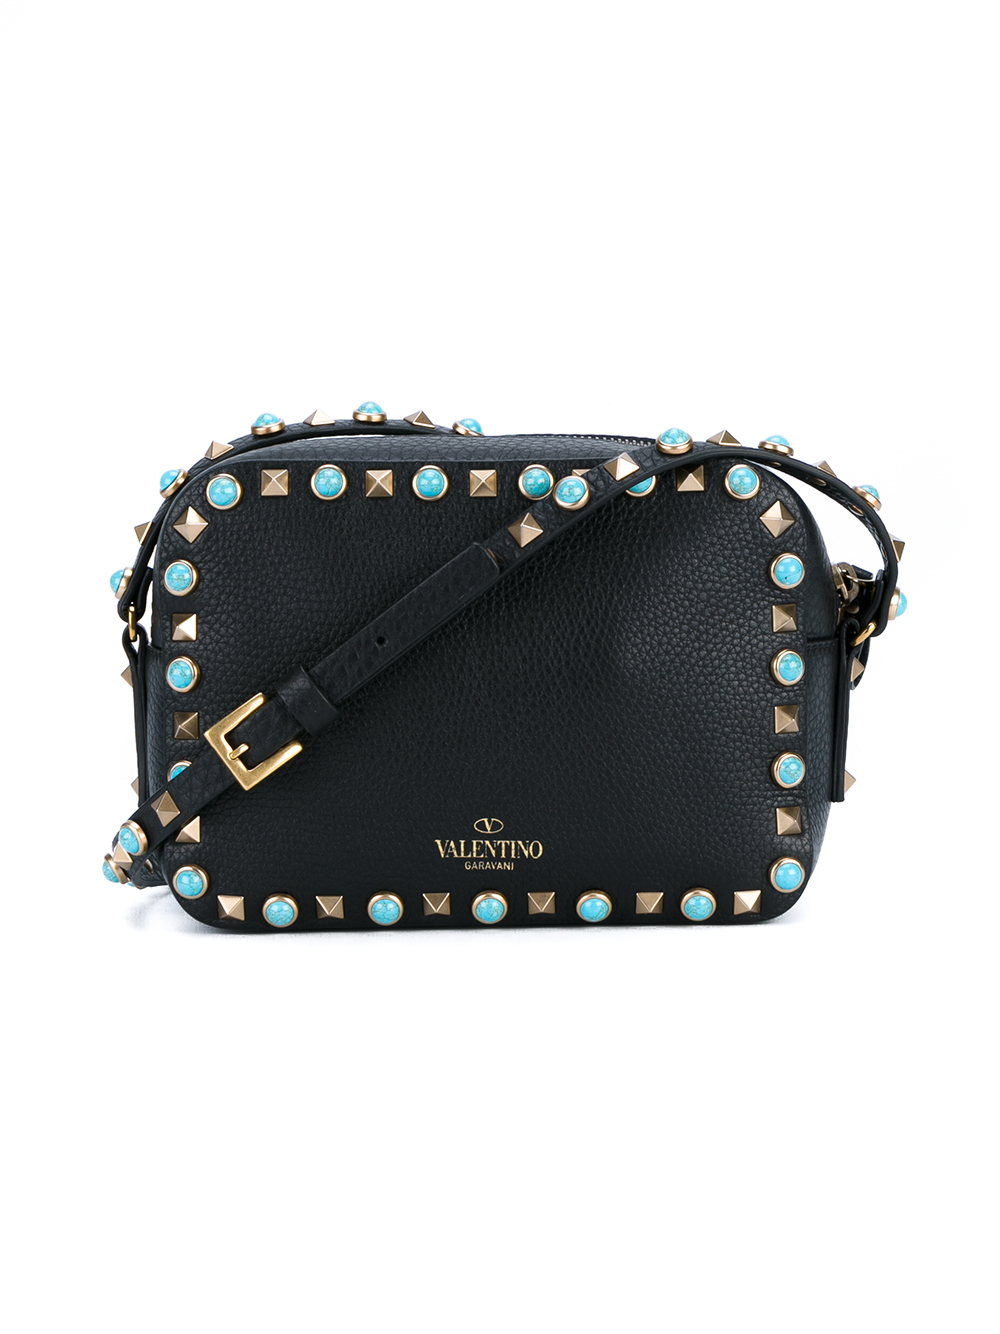 cb143994d Gallery. Previously sold at: Browns · Women's Camera Bags Women's Valentino  ...